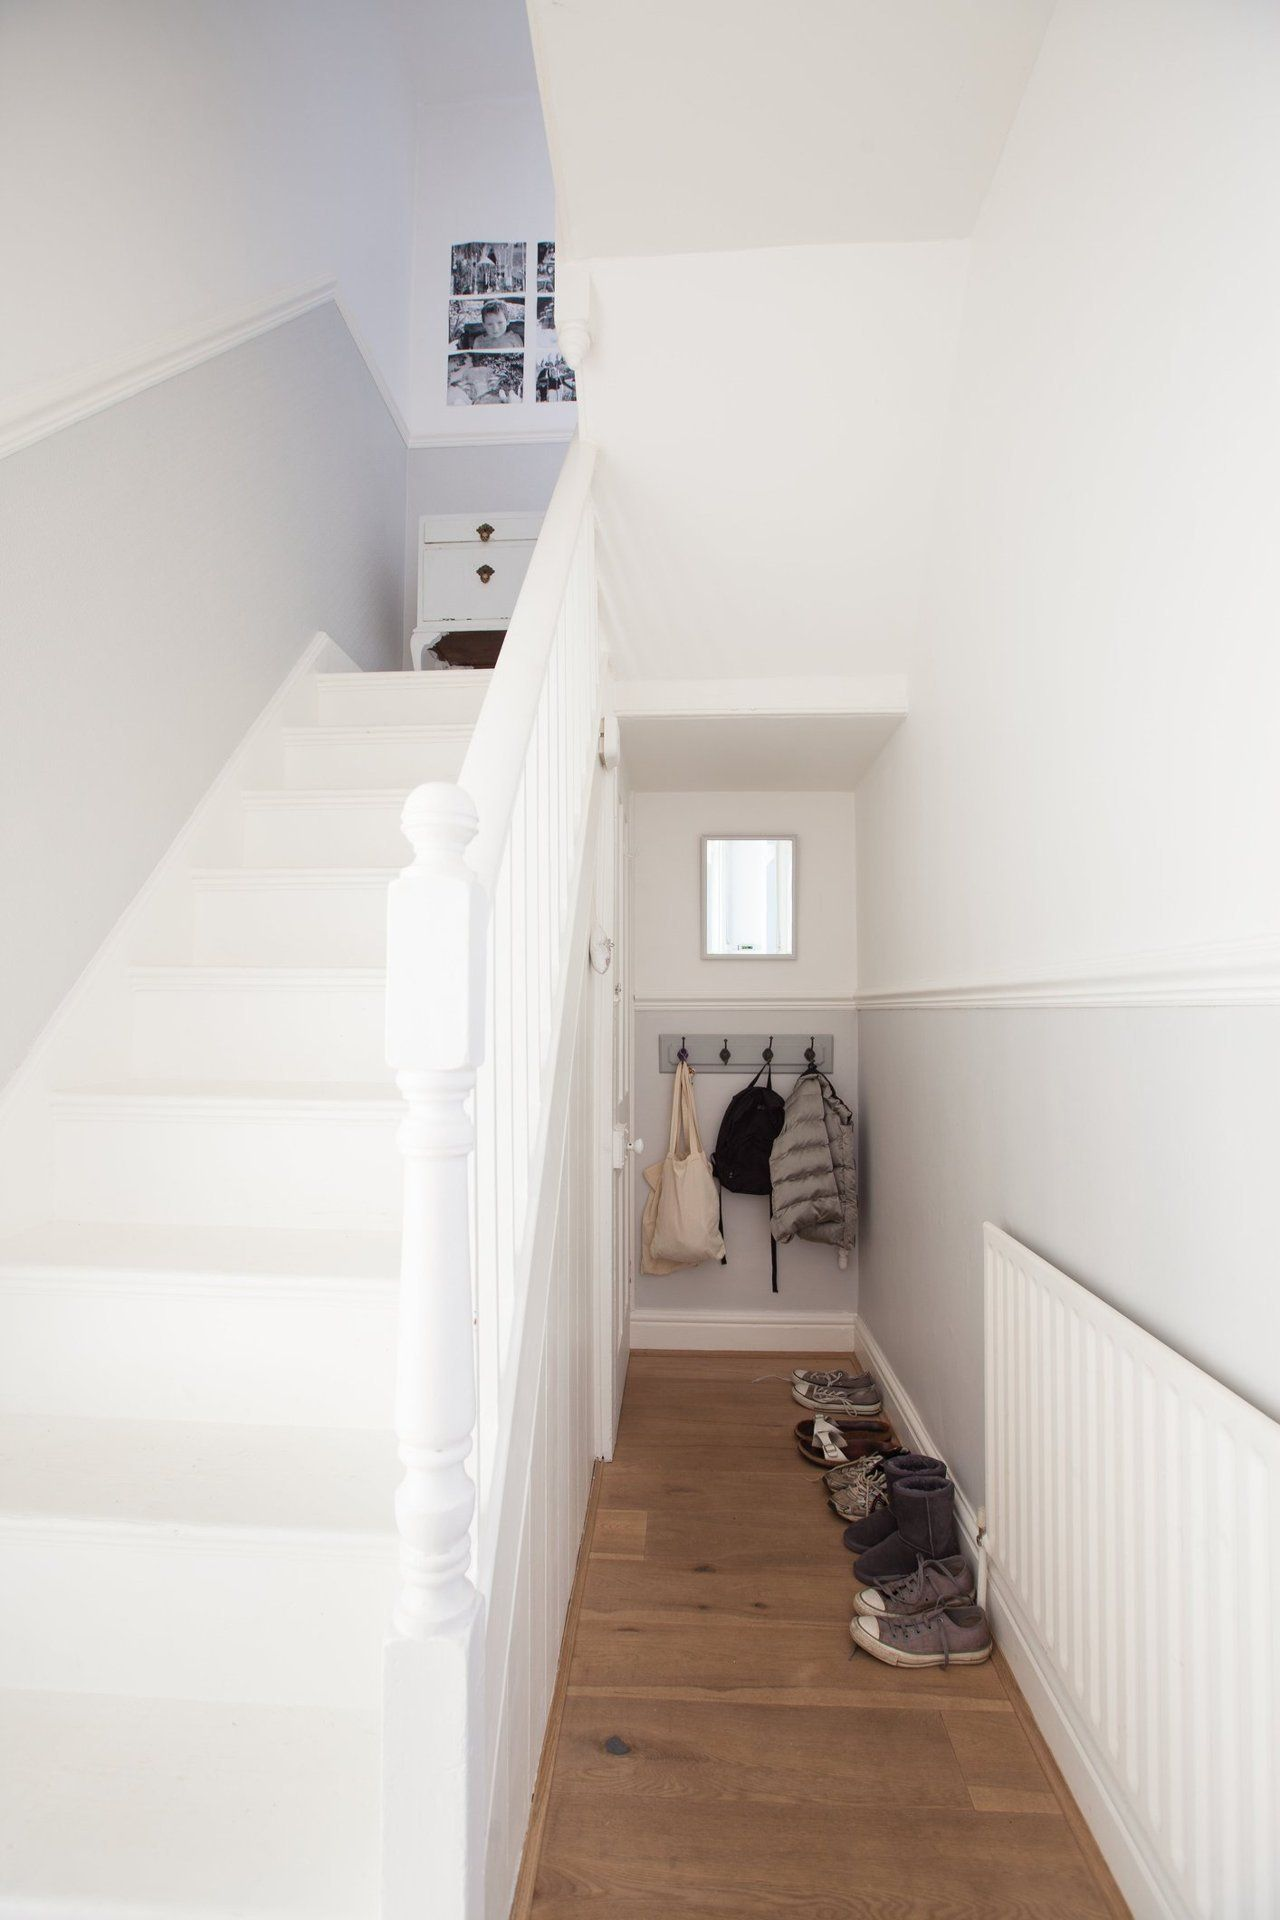 House Tour: A Scandinavian Style Victorian in the UK | Pinterest ...